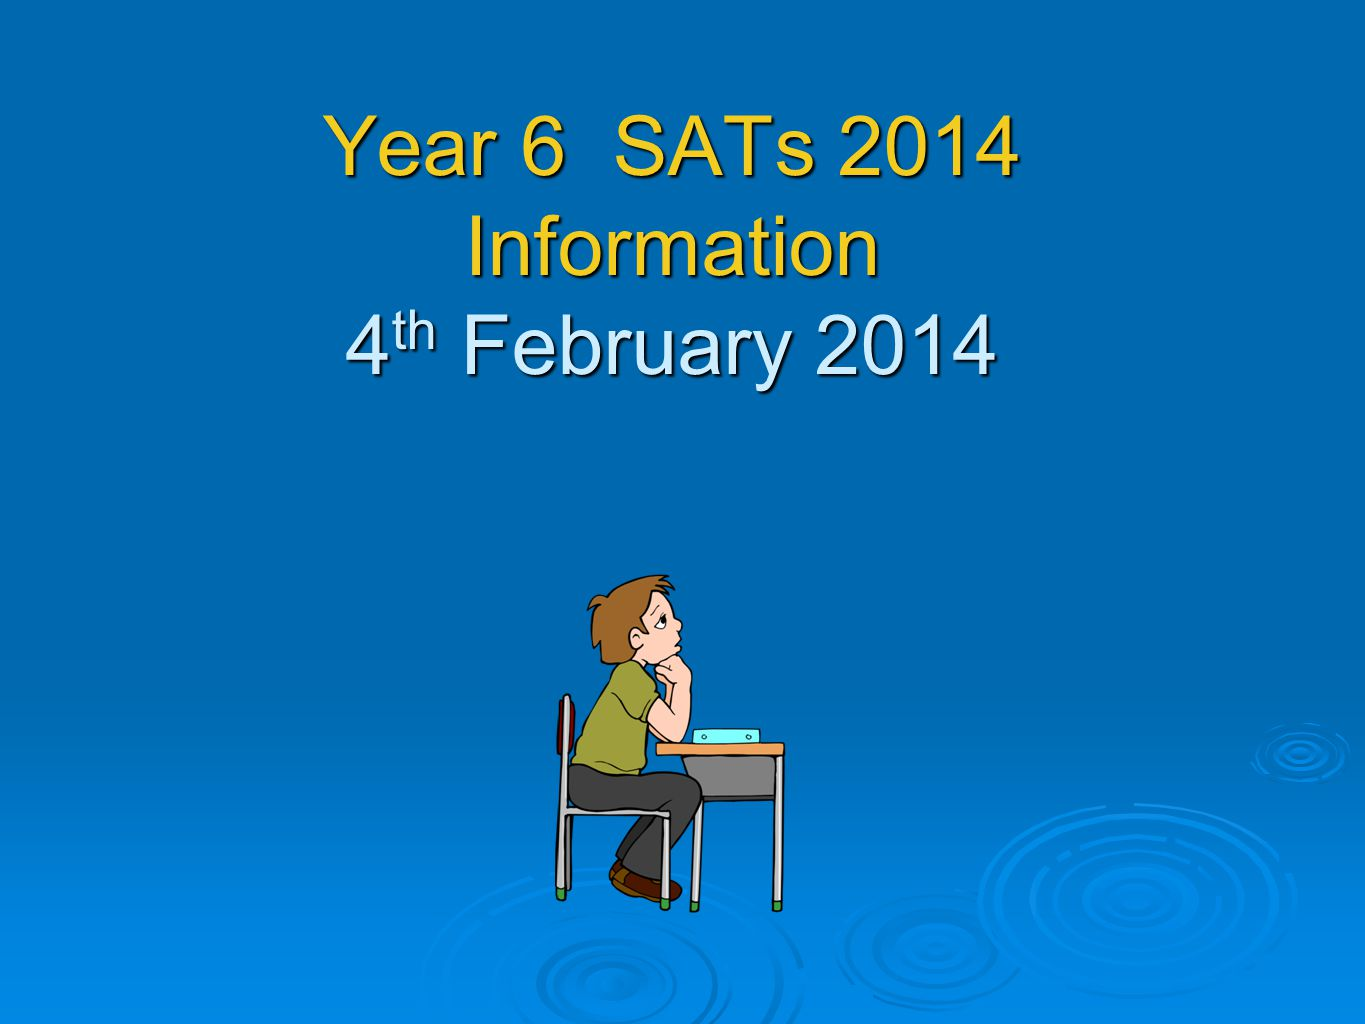 Year 6 SATs 2014 Information 4th February 2014